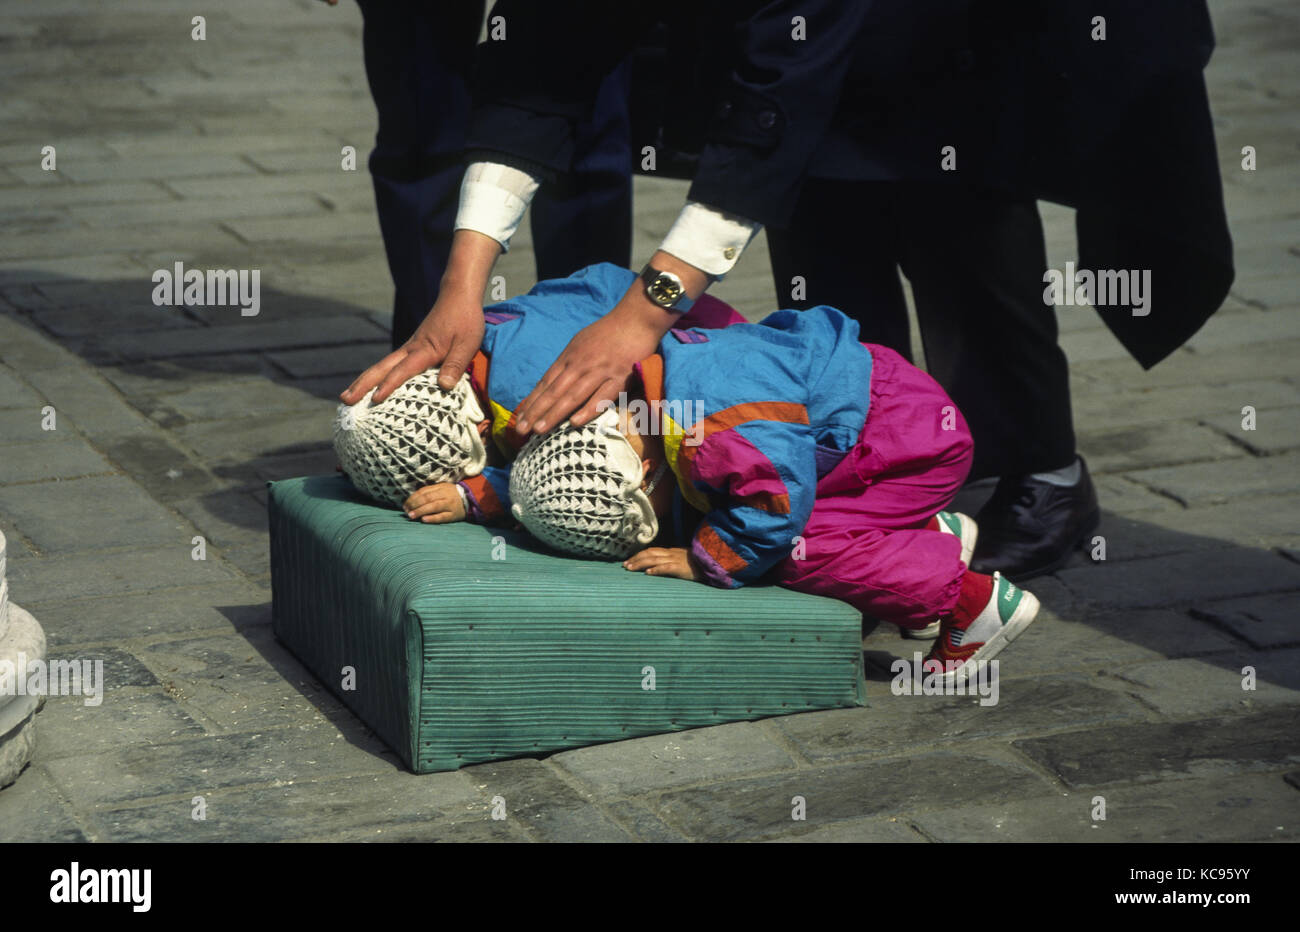 1995, Beijing, People's Republic of China, Asia - A father teaches his twins how to pray at a temple in Beijing. - Stock Image